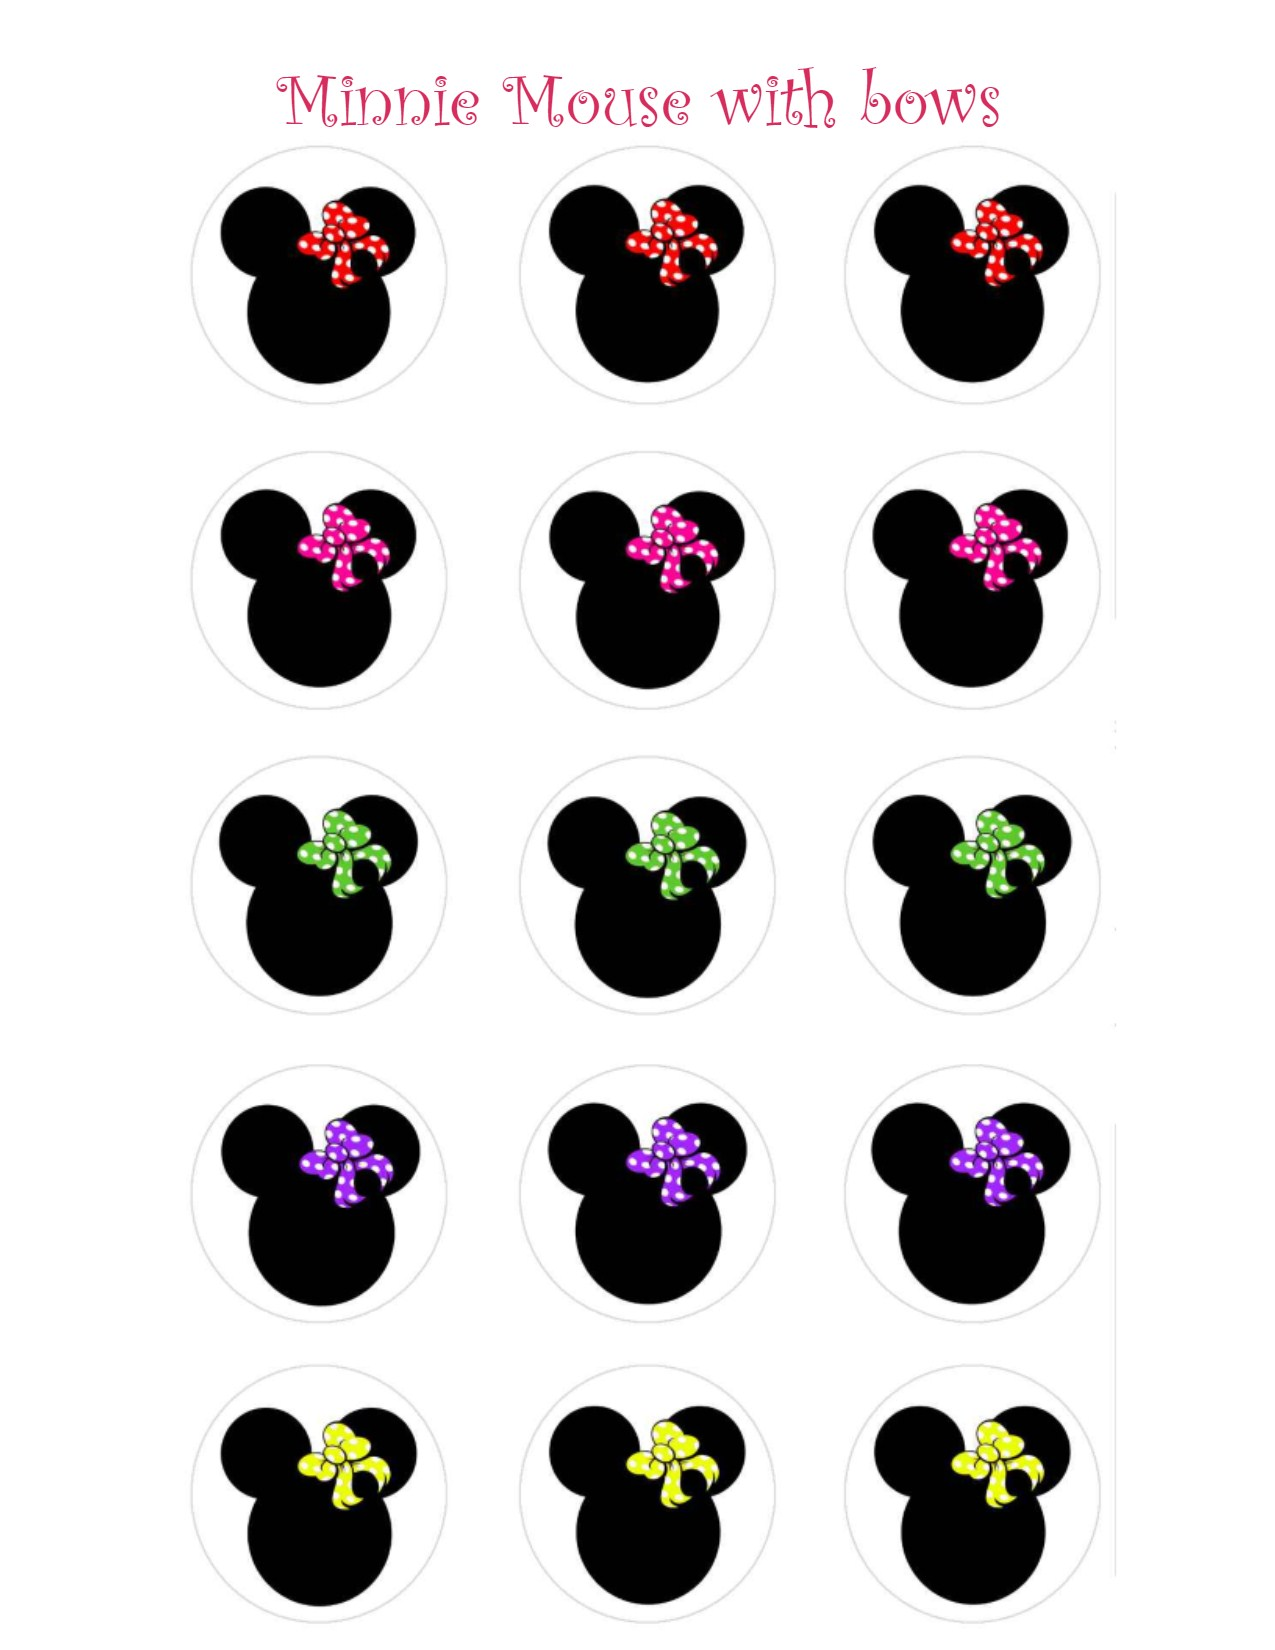 1275x1650 Minnie Mouse With Bows Animal Clipart Panda